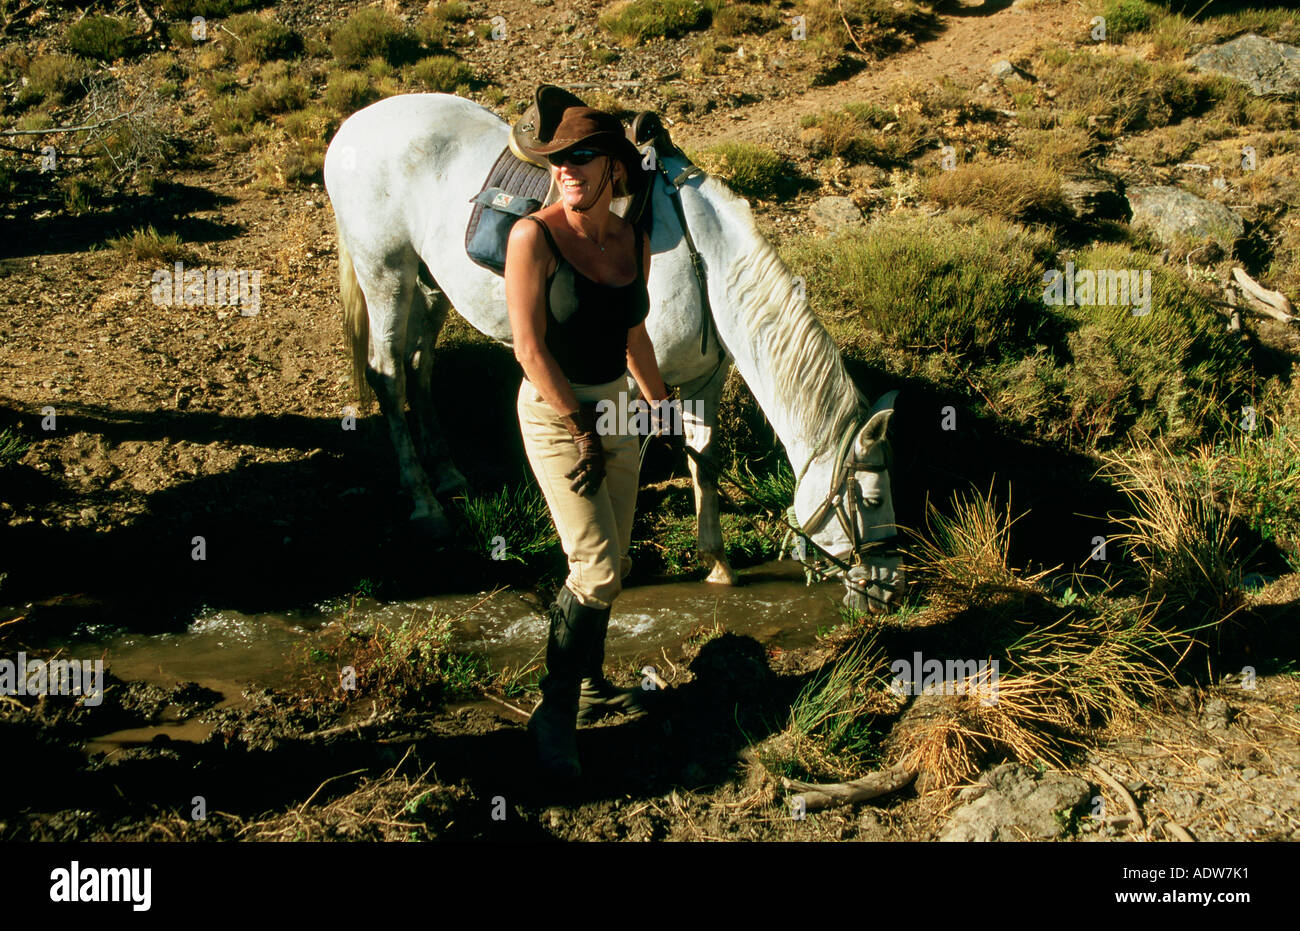 Rider watering her horse in the Alpujarra in the Sierra Nevada Spain - Stock Image